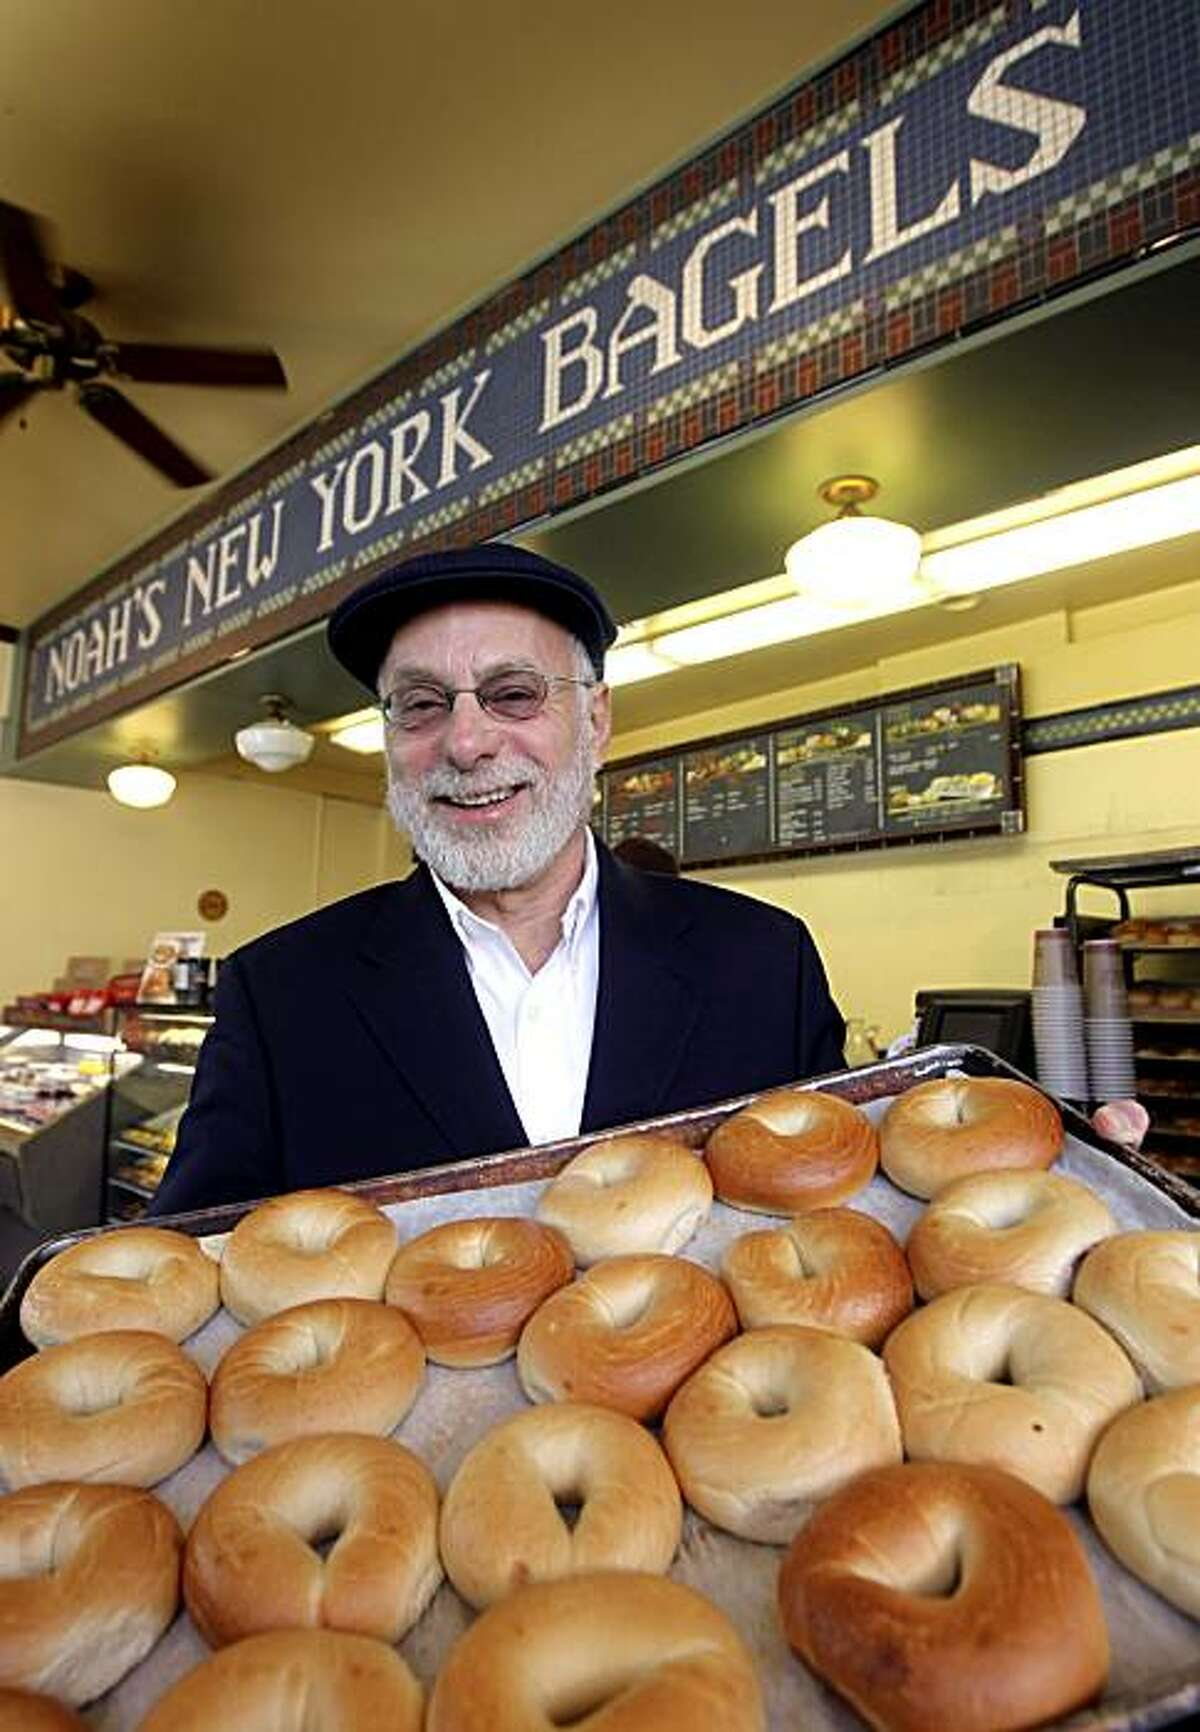 Noah Alper, founder of the Noah's Bagels restaurant chain, visits the original location on College Avenue in Berkeley, Calif., on Thursday, Dec. 3, 2009.